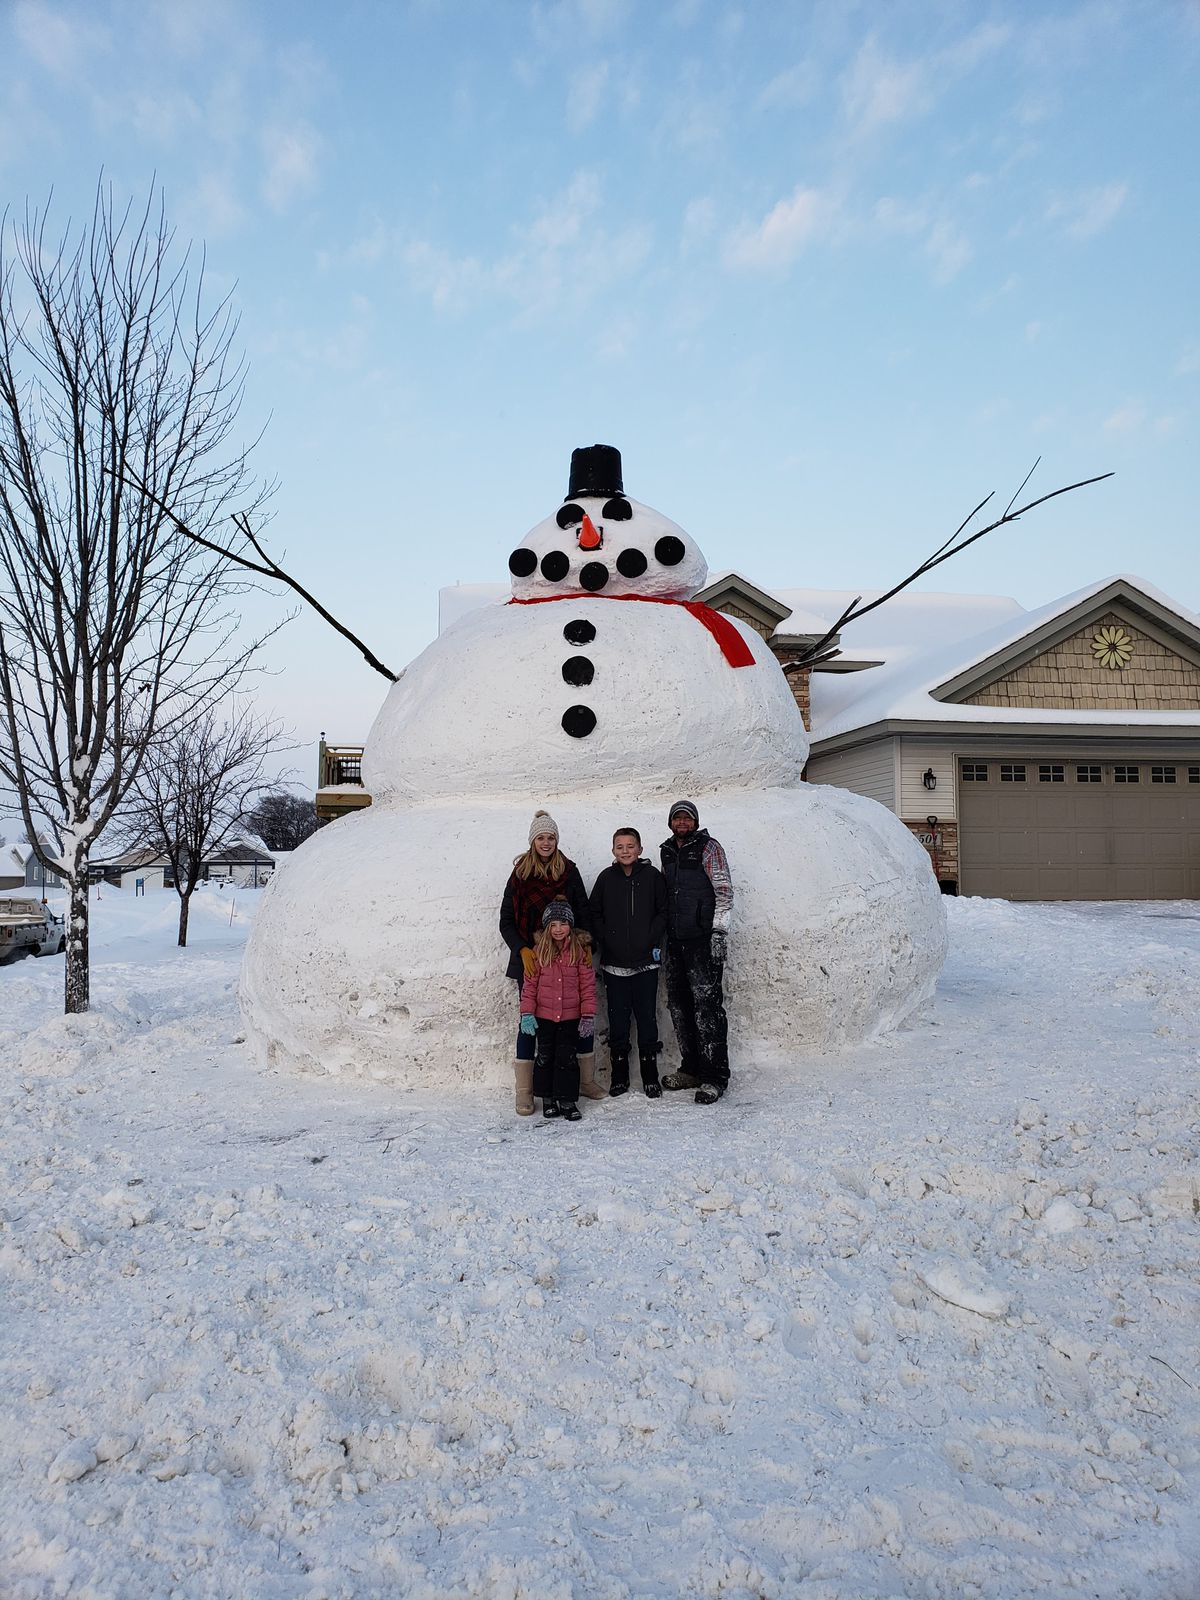 massive minnesota snowman towers over neighborhood